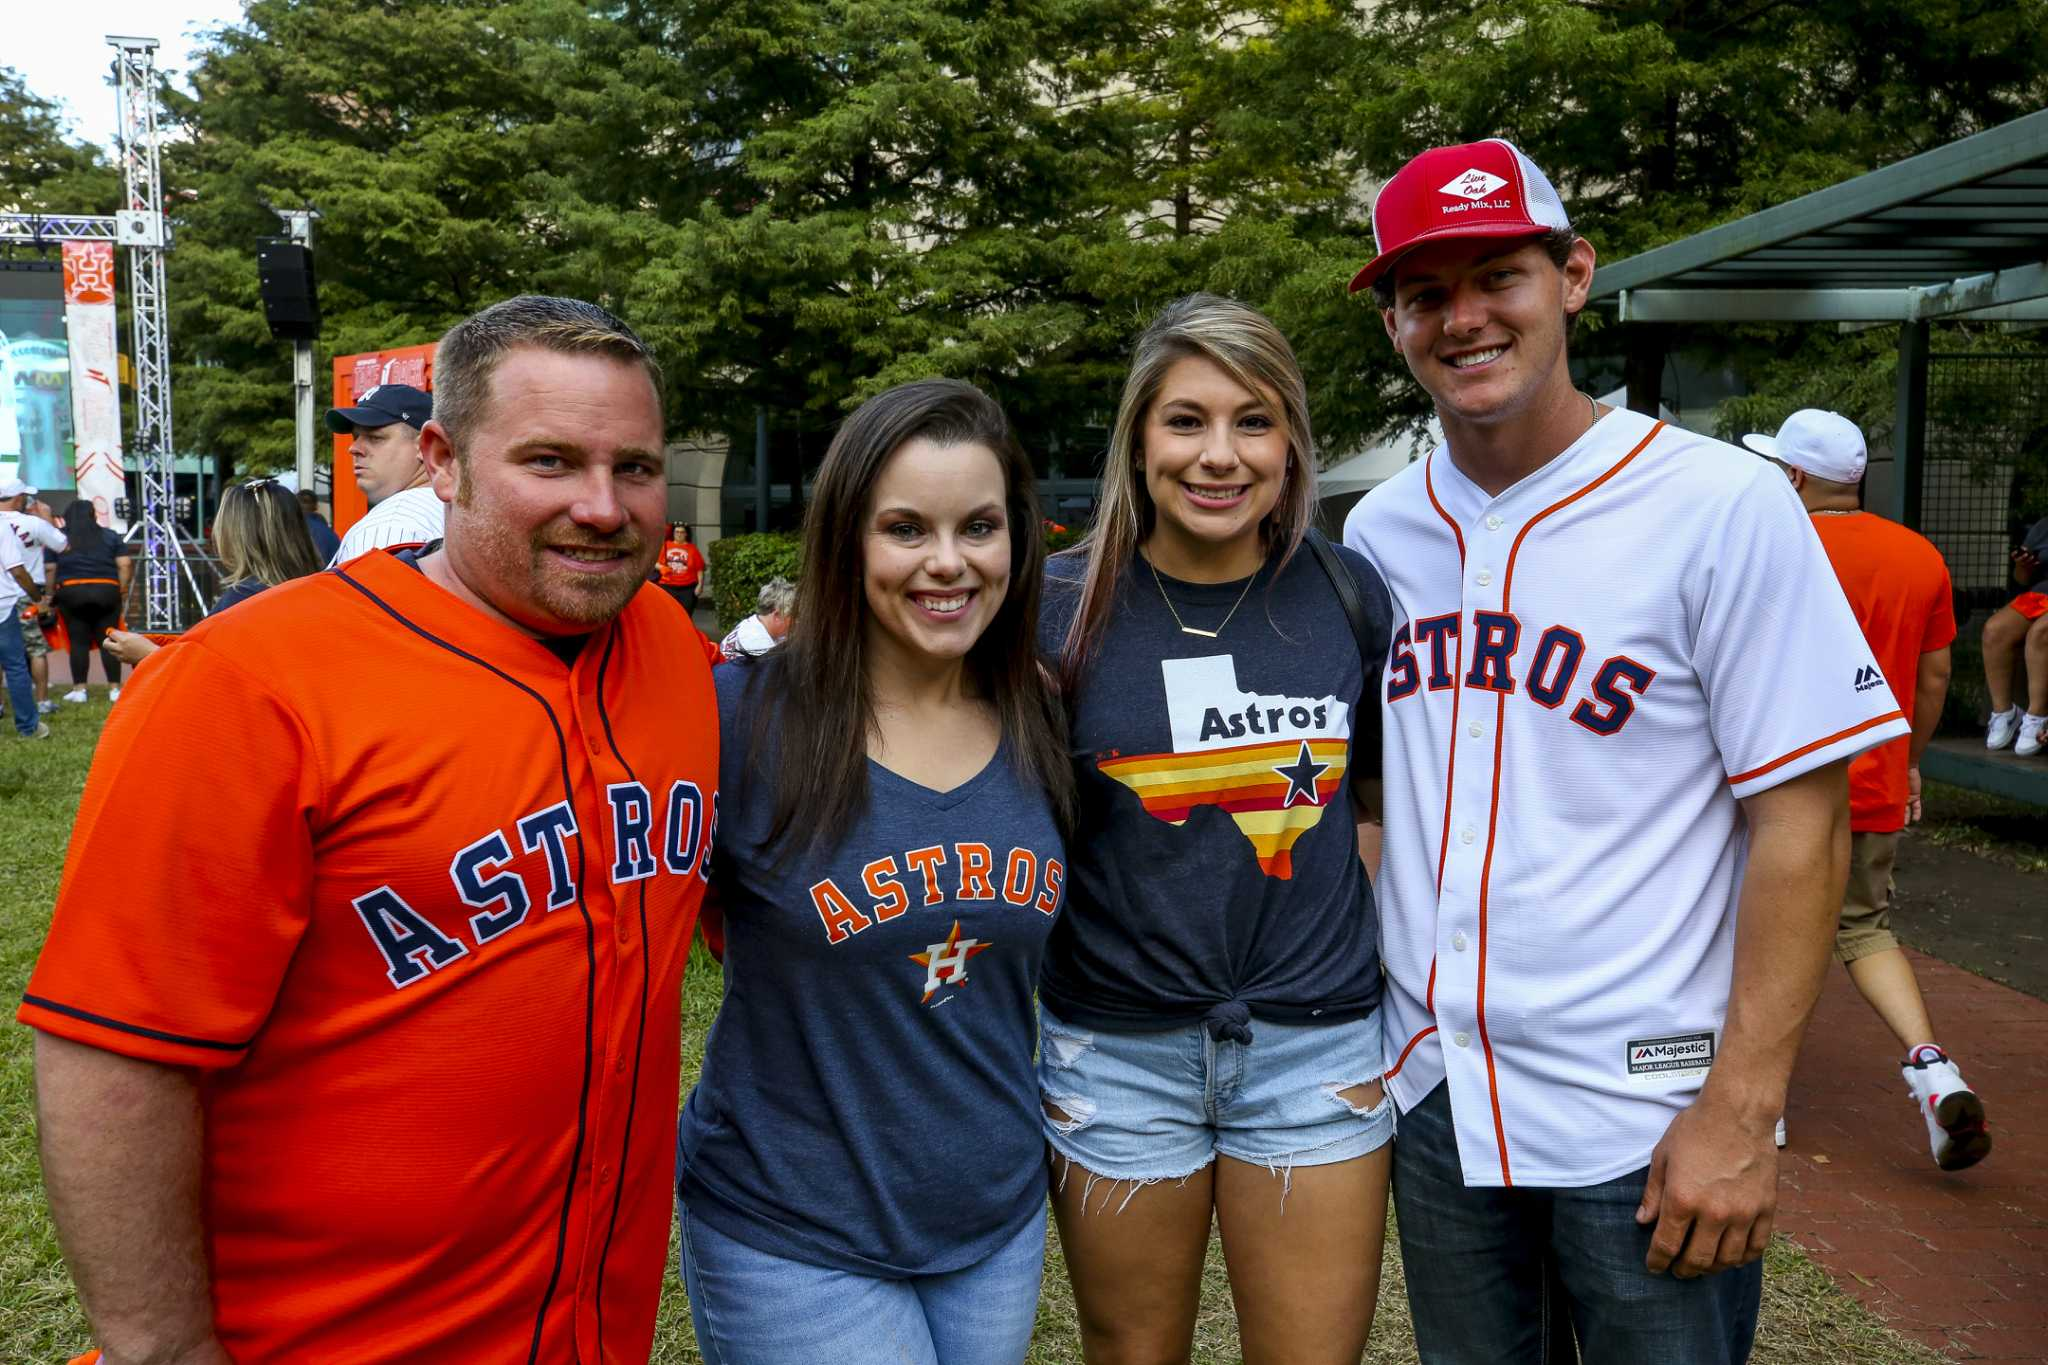 Astros fans at Game 6 of the ALCS against the Yankees